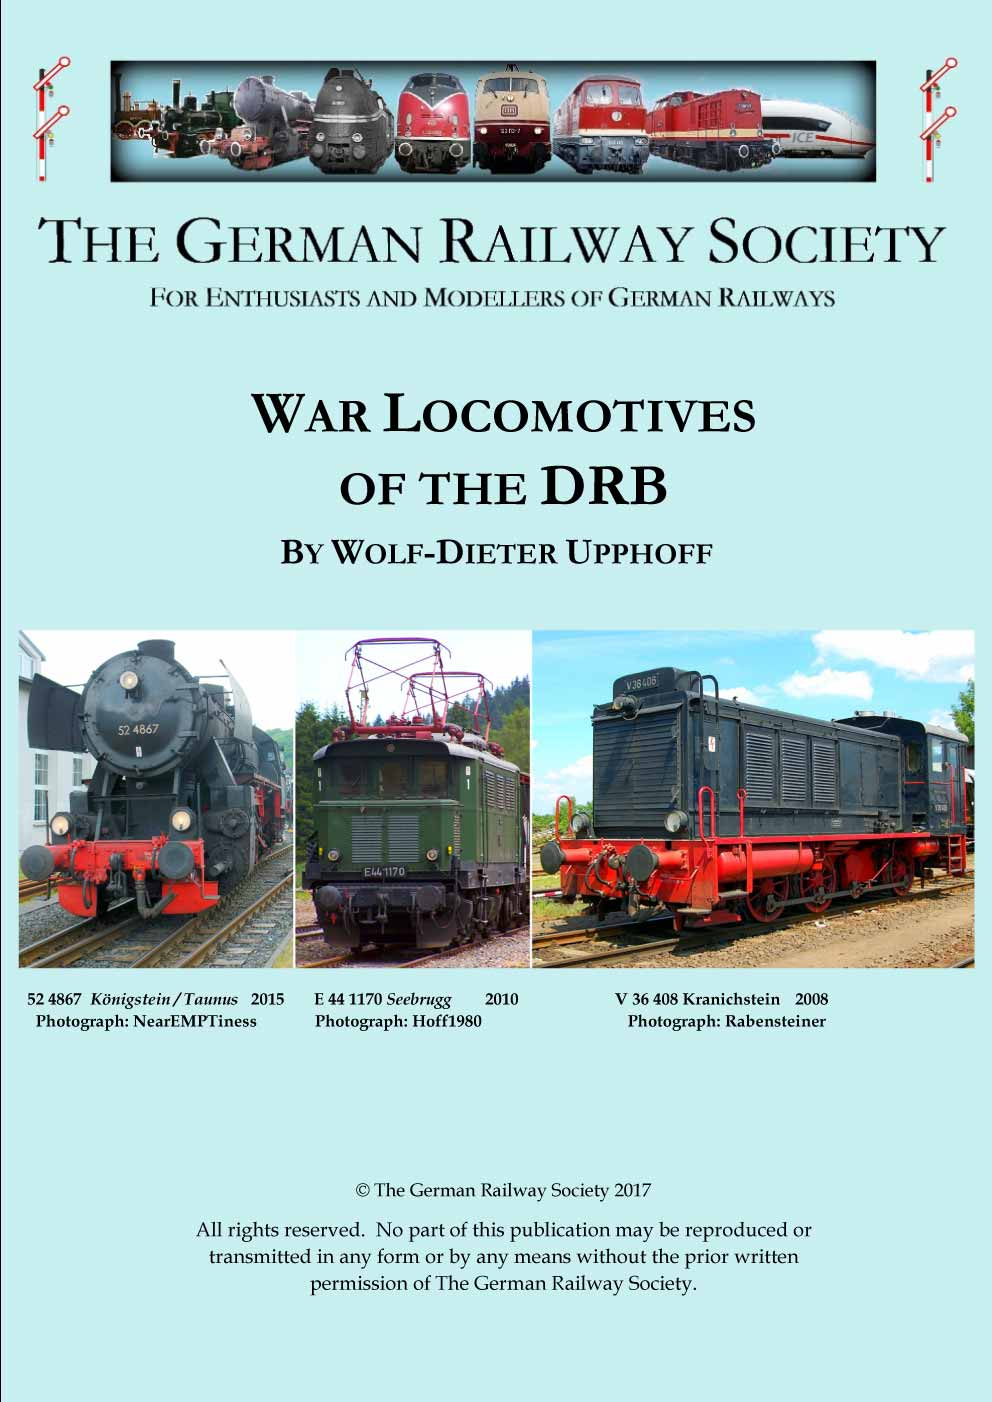 Cover image: War locomotives of the DRB